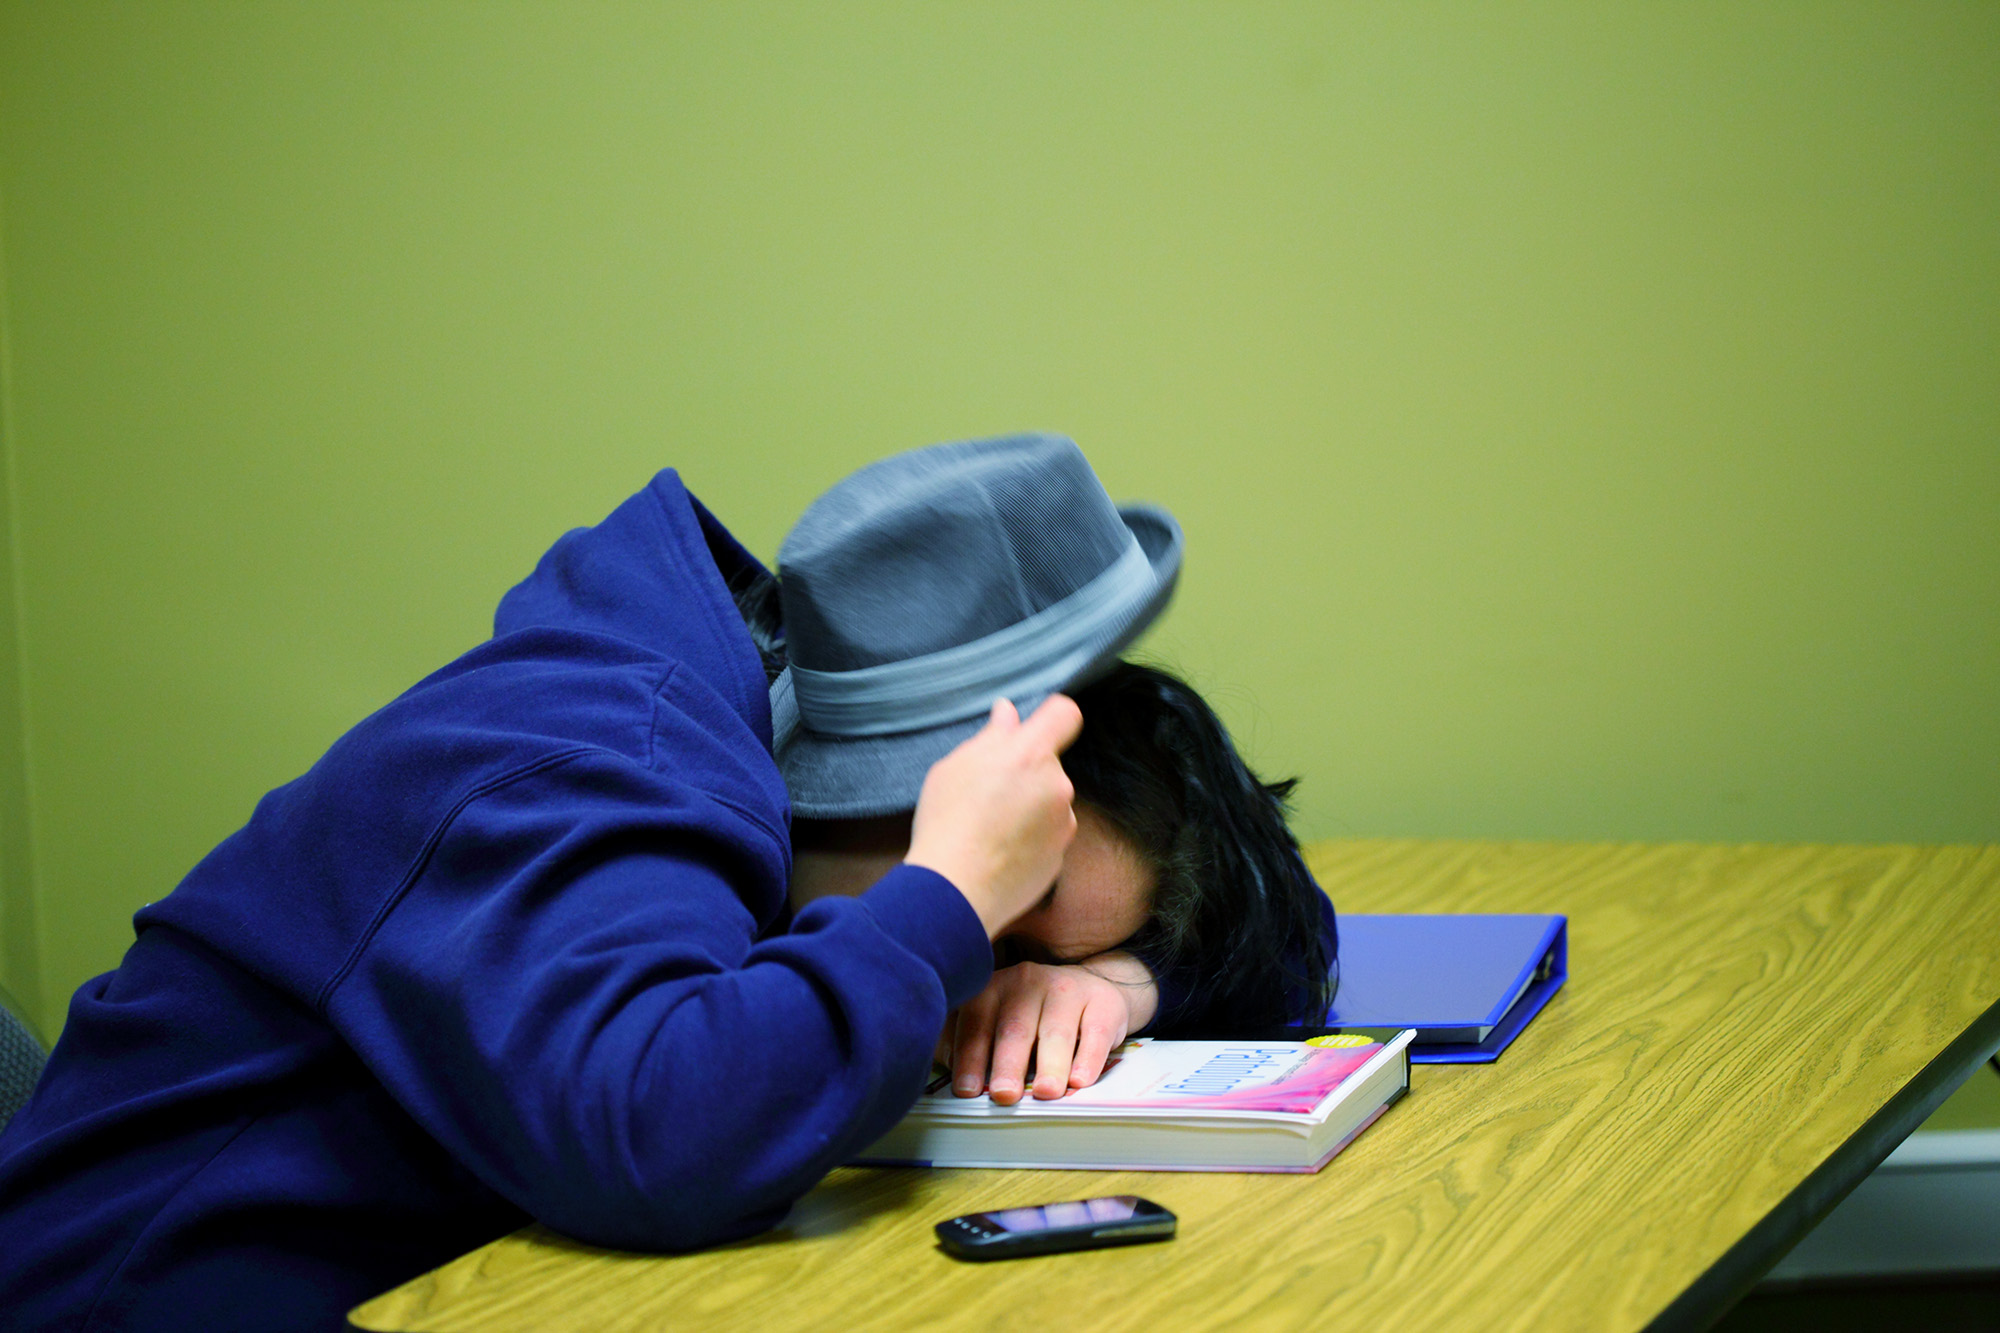 Free_College_Pathology_Student_Sleeping_Creative_Commons_(6961676525)